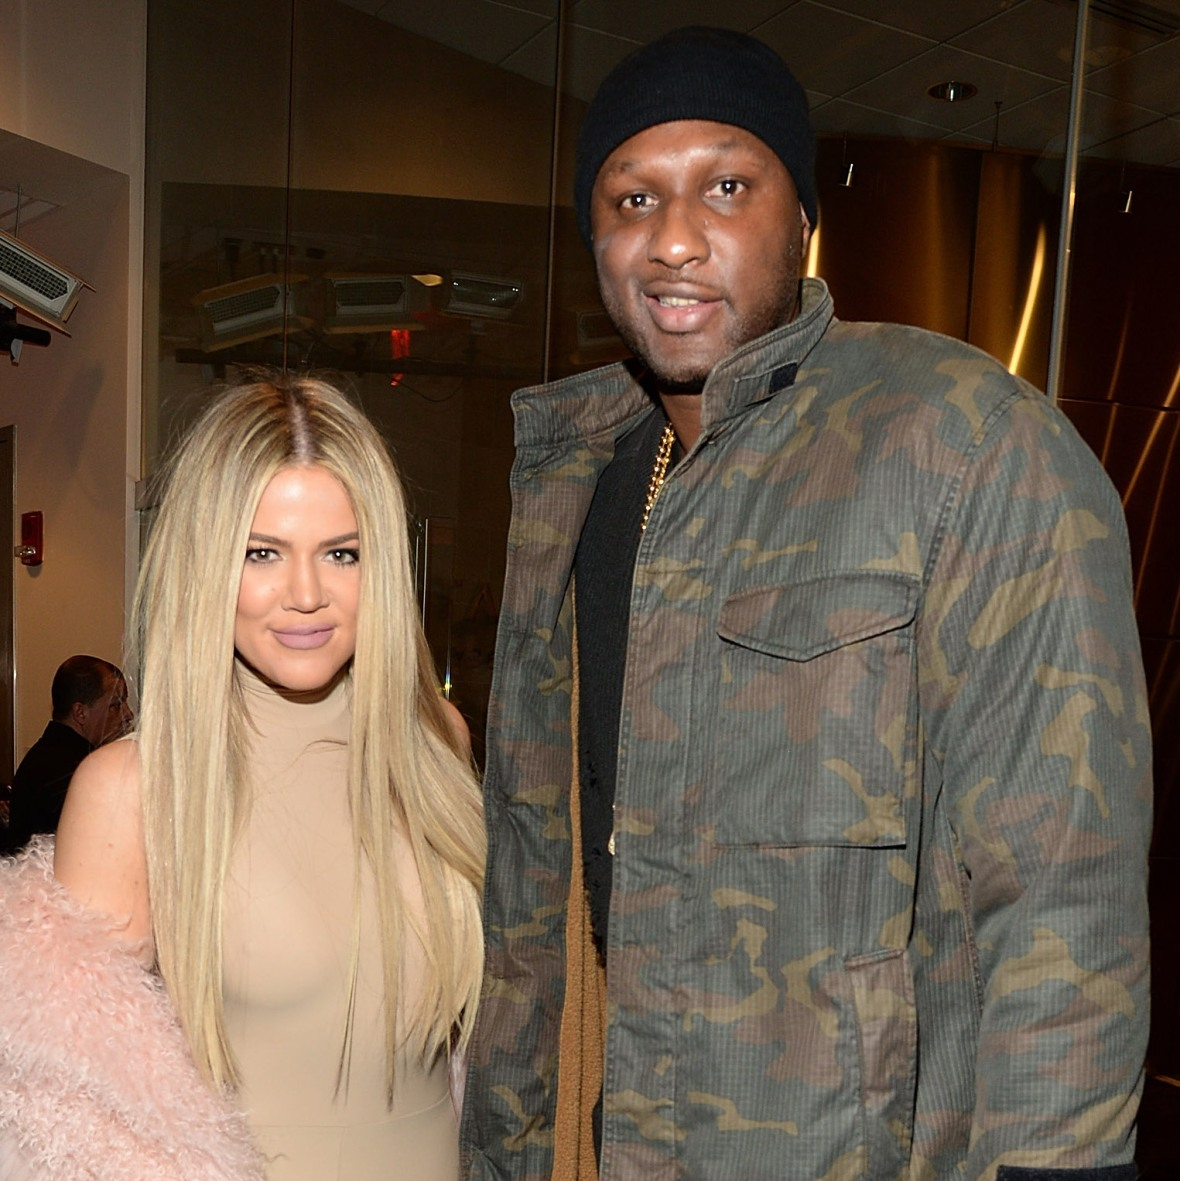 khloé kardashian lamar odom getty images